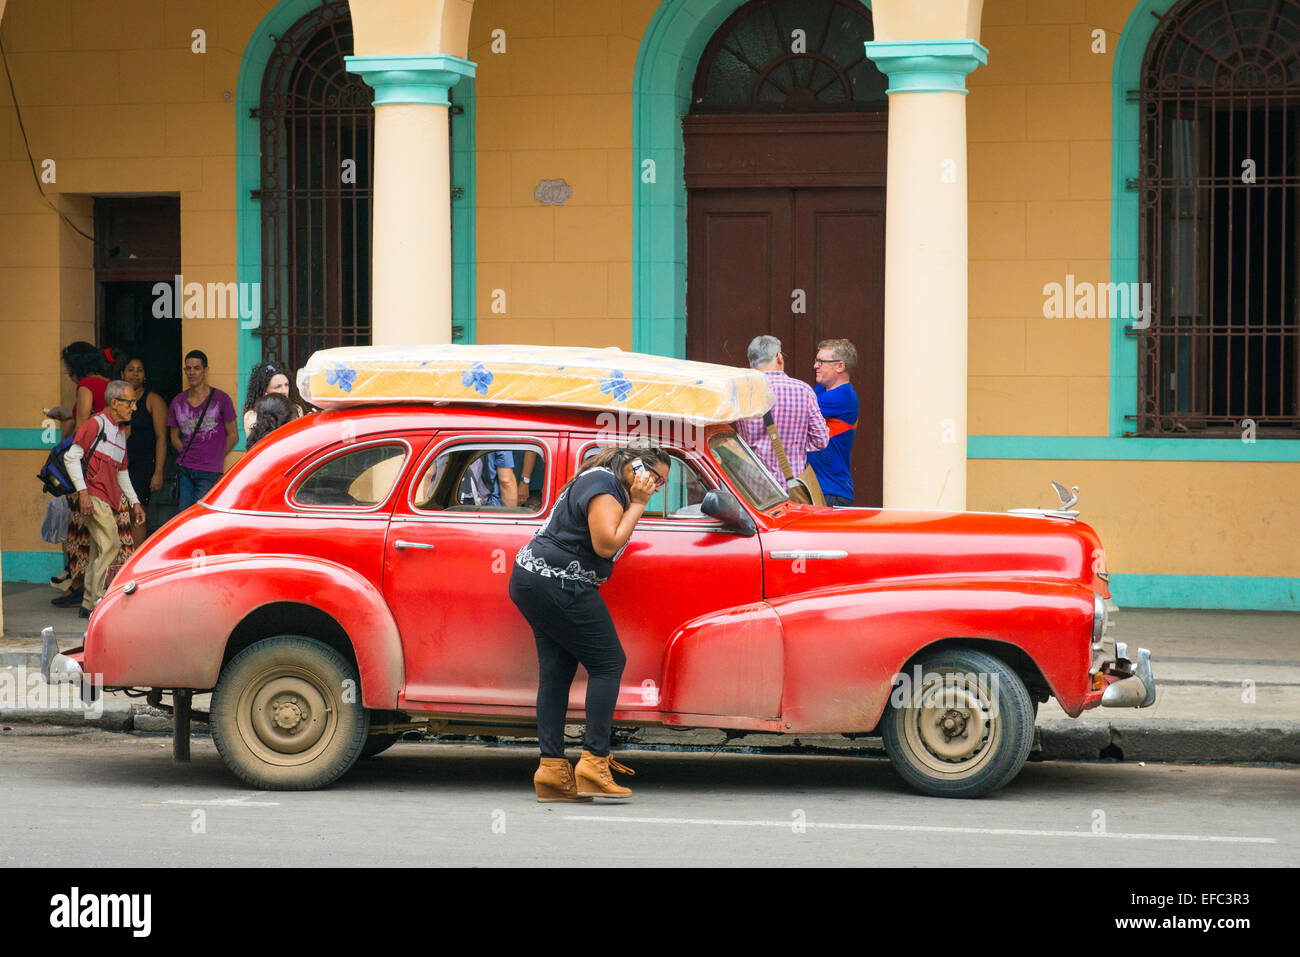 Car For Sale Havana Cuba